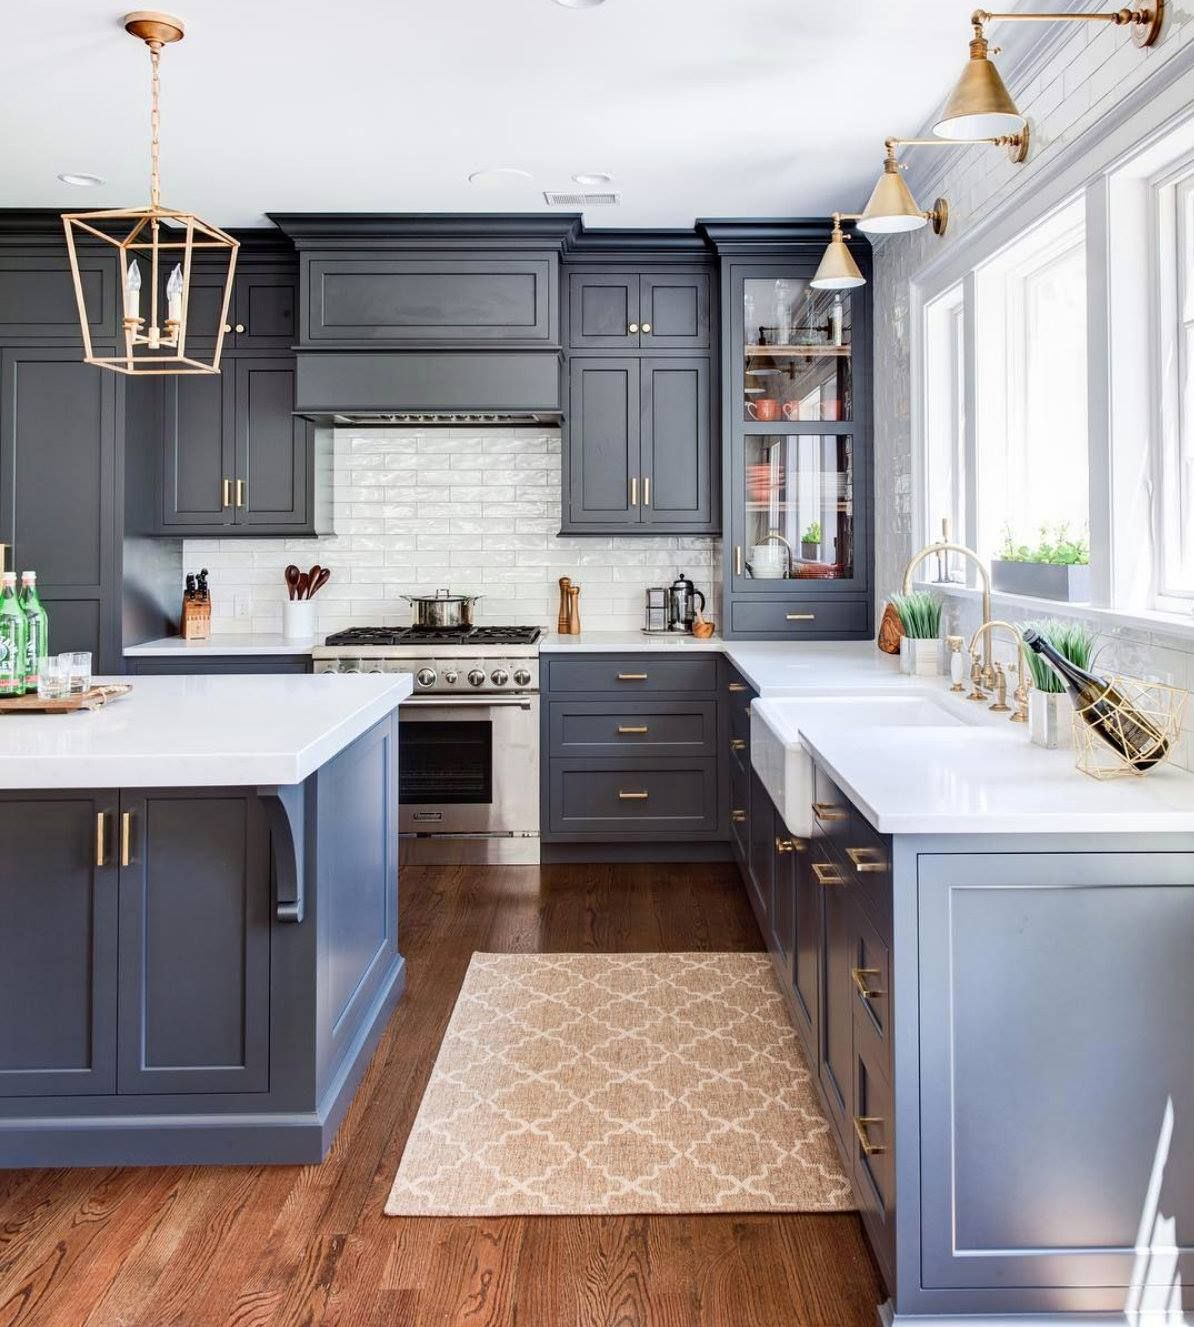 color Benjamin Moore Wrought Iron Kitchen